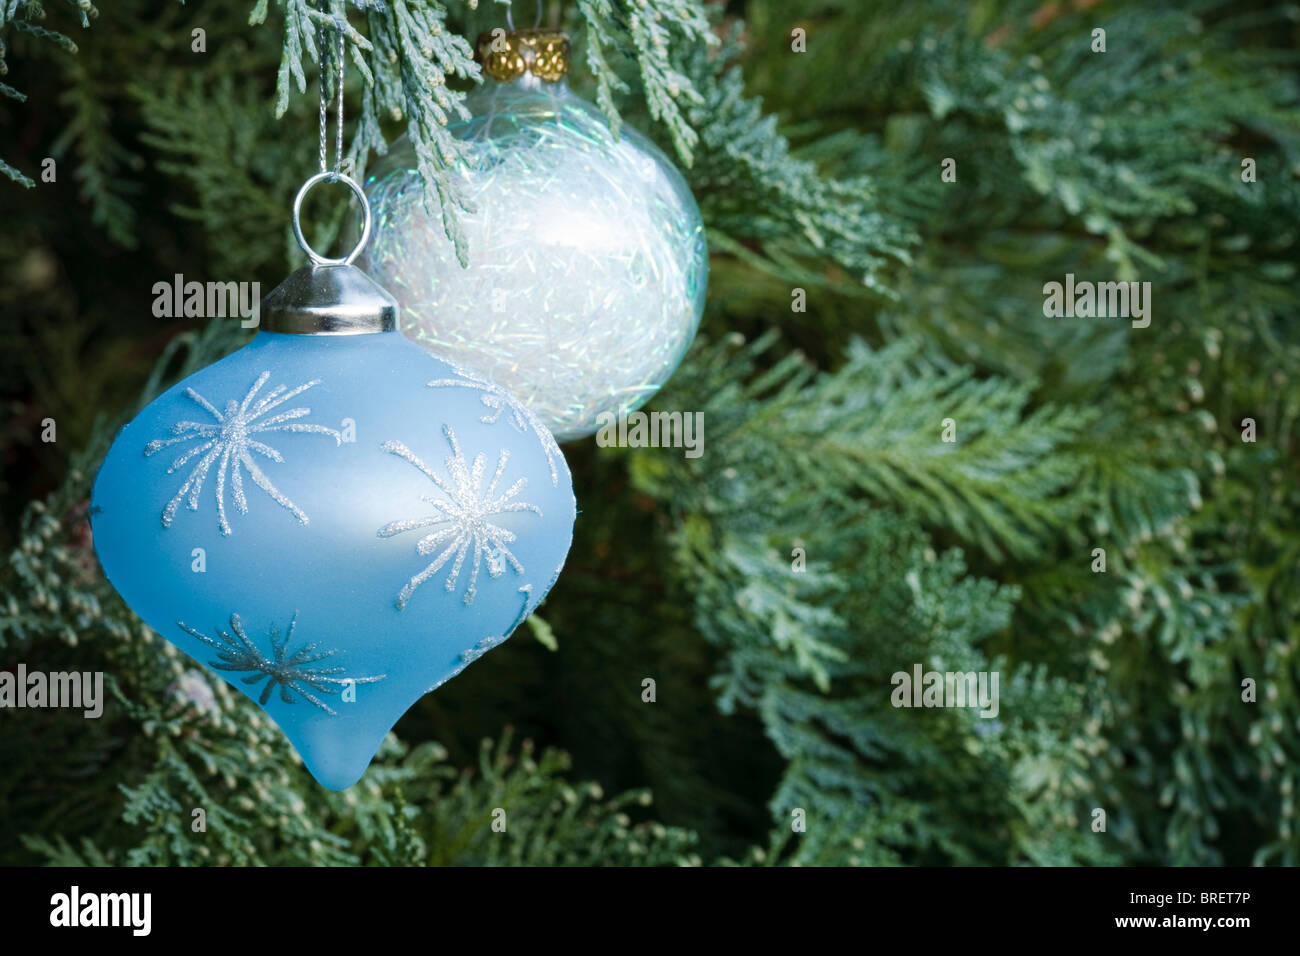 Christmas decorations hanging in an evergreen tree - Stock Image